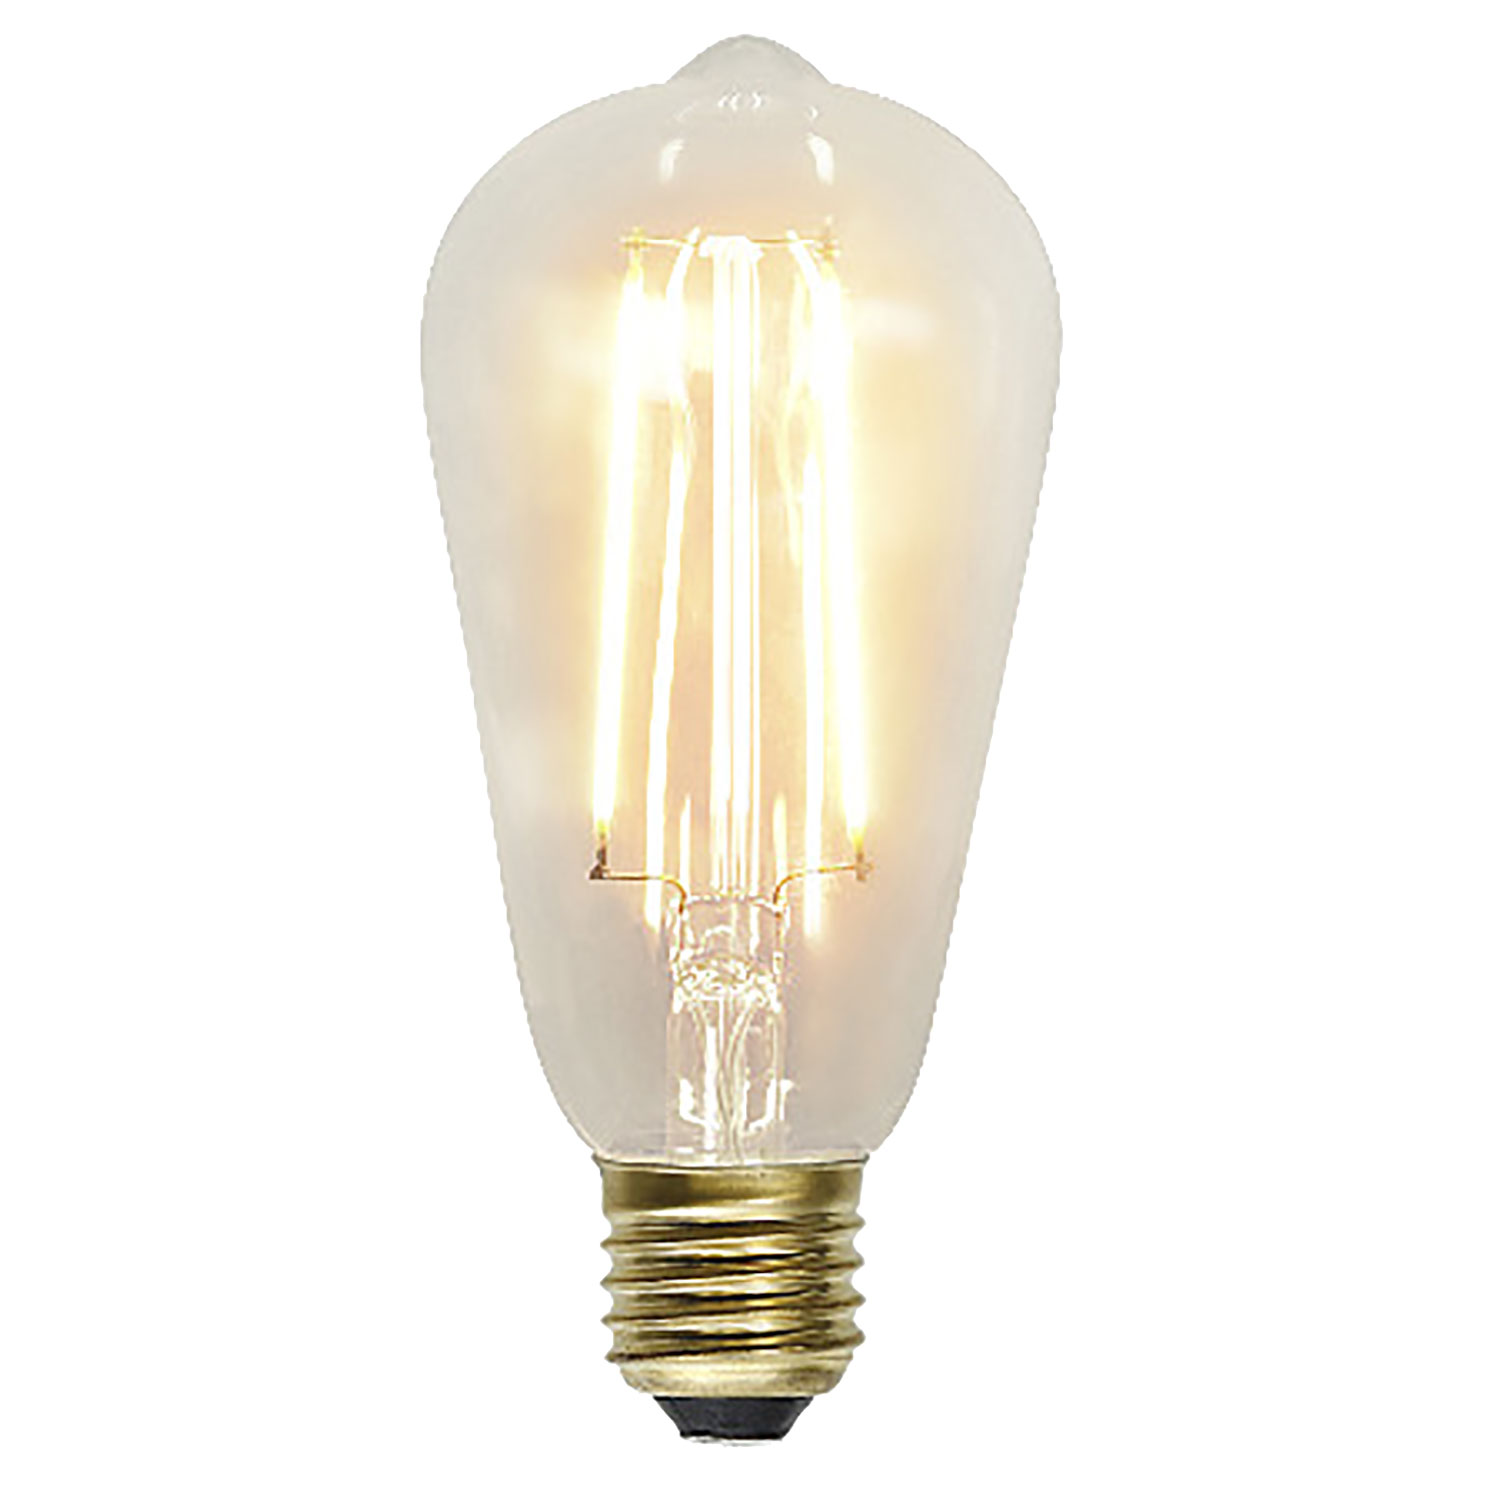 LED-lampa E27 ST64 soft glow, transparent